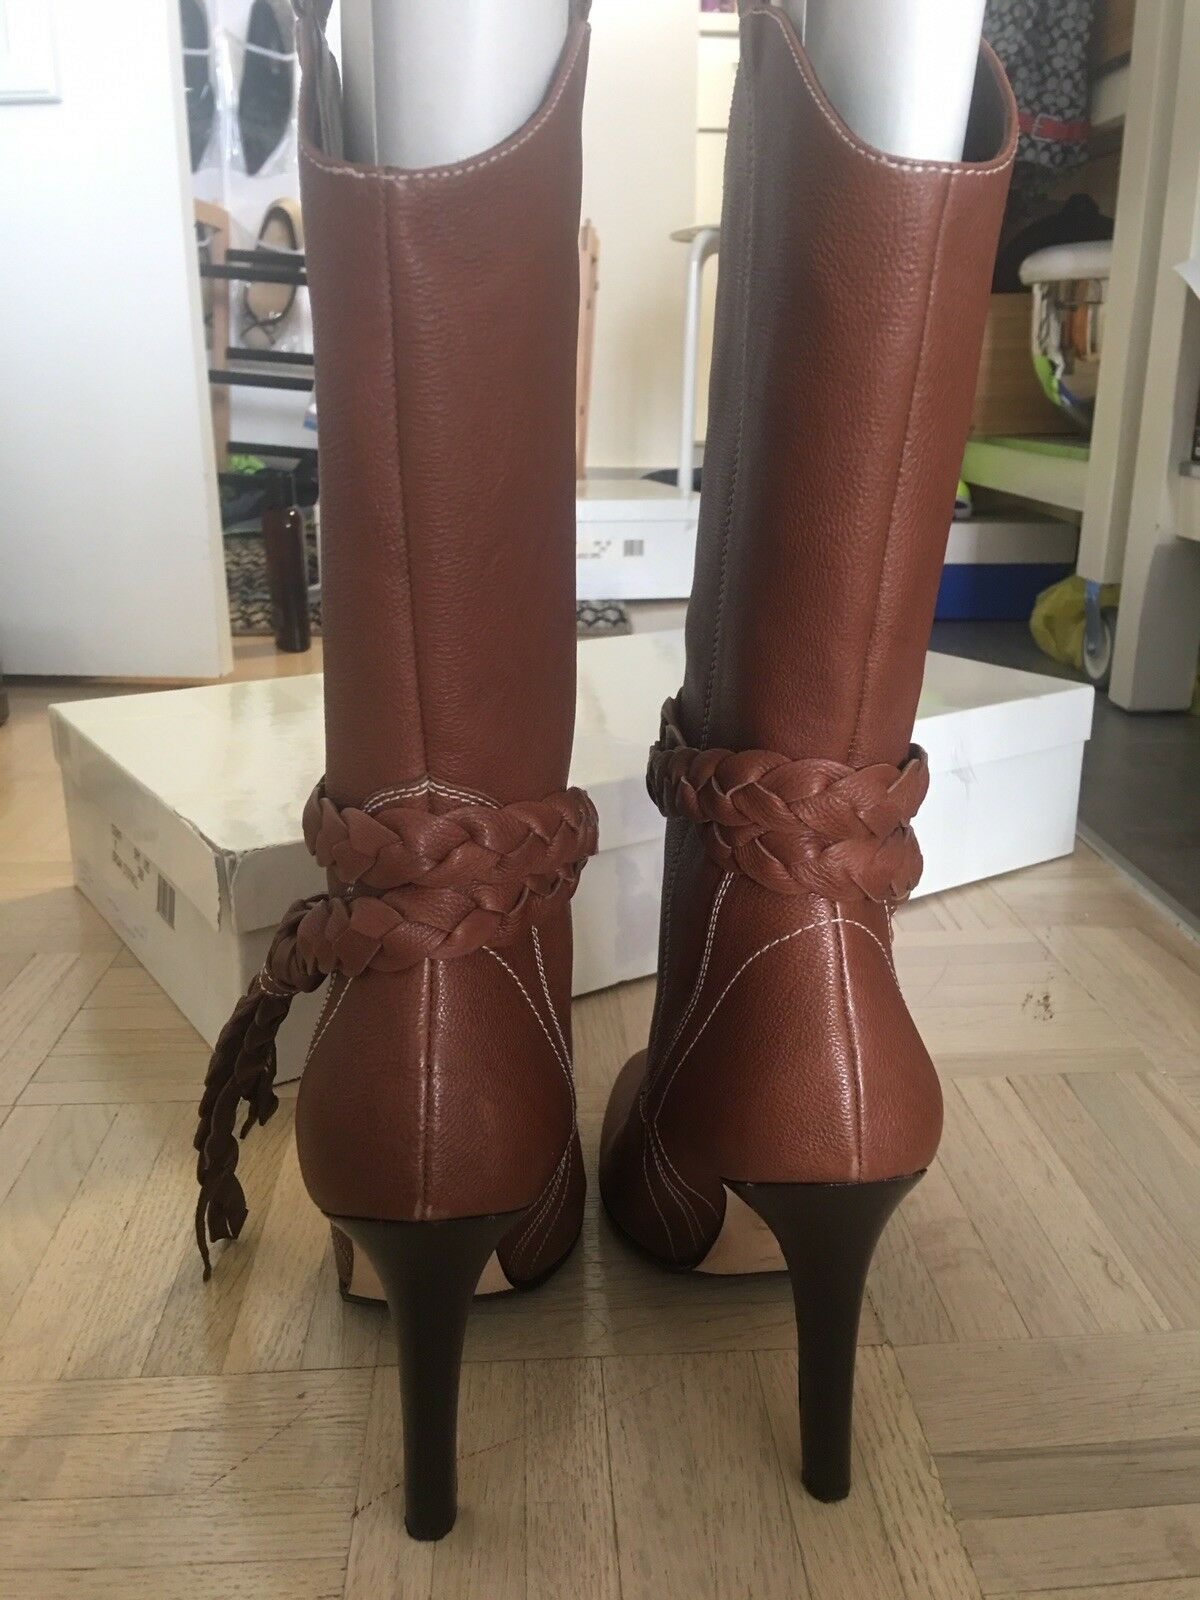 Manolo Blahnik marron Leather Tall bottes 38.5  1295 1295 1295 321e14